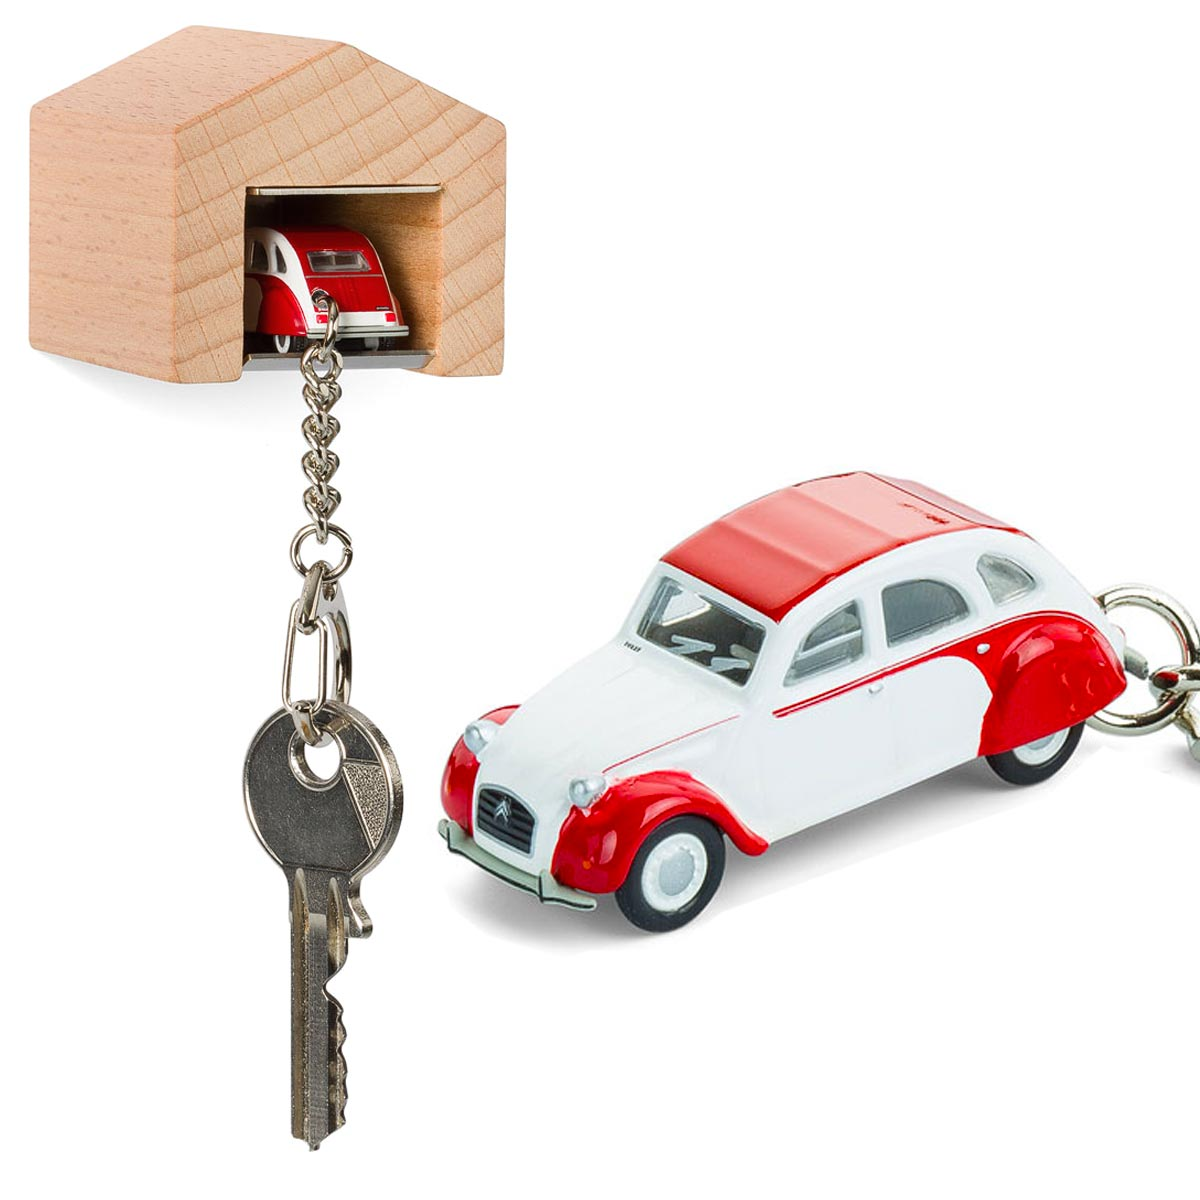 Citroen 2CV Dolly keyring with beech wood garage | The Design Gift Shop